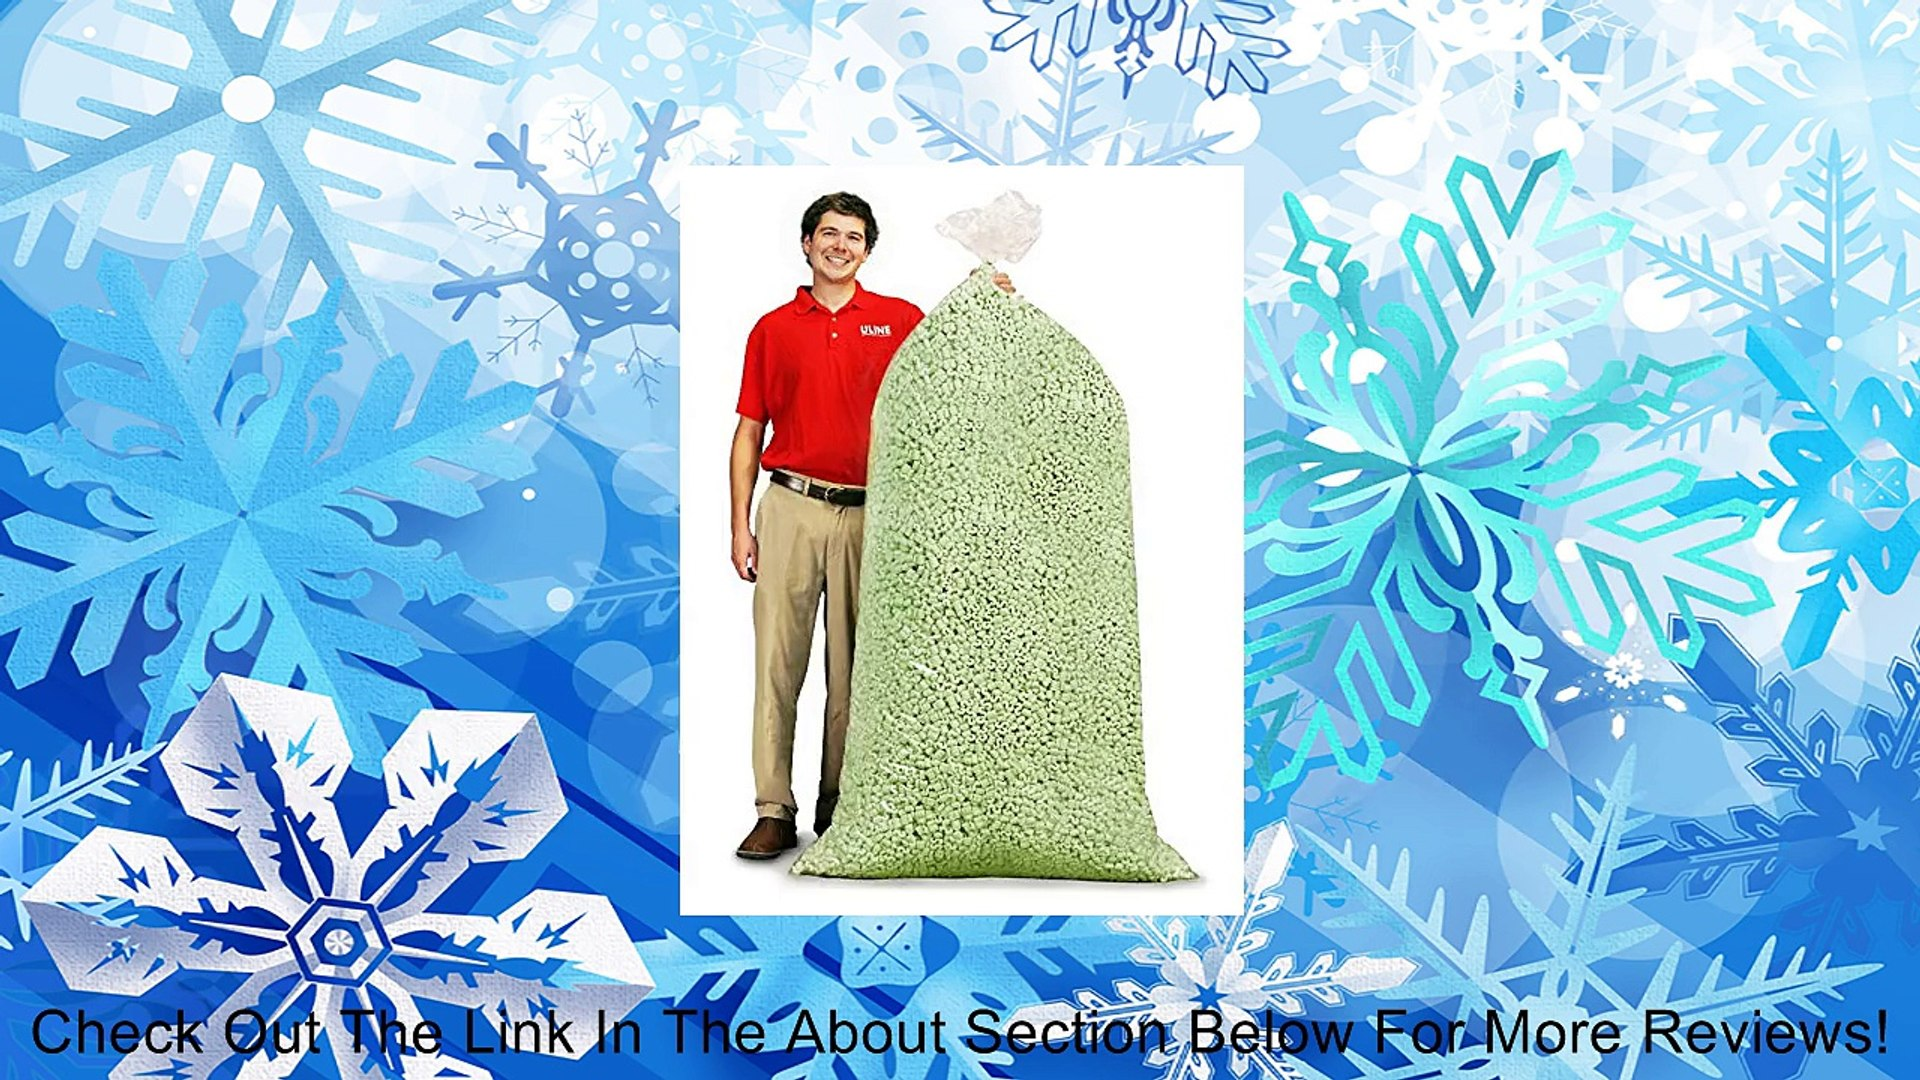 Enjoyable Green Anti Static Peanuts 20 Cubic Foot Bag Review Ocoug Best Dining Table And Chair Ideas Images Ocougorg